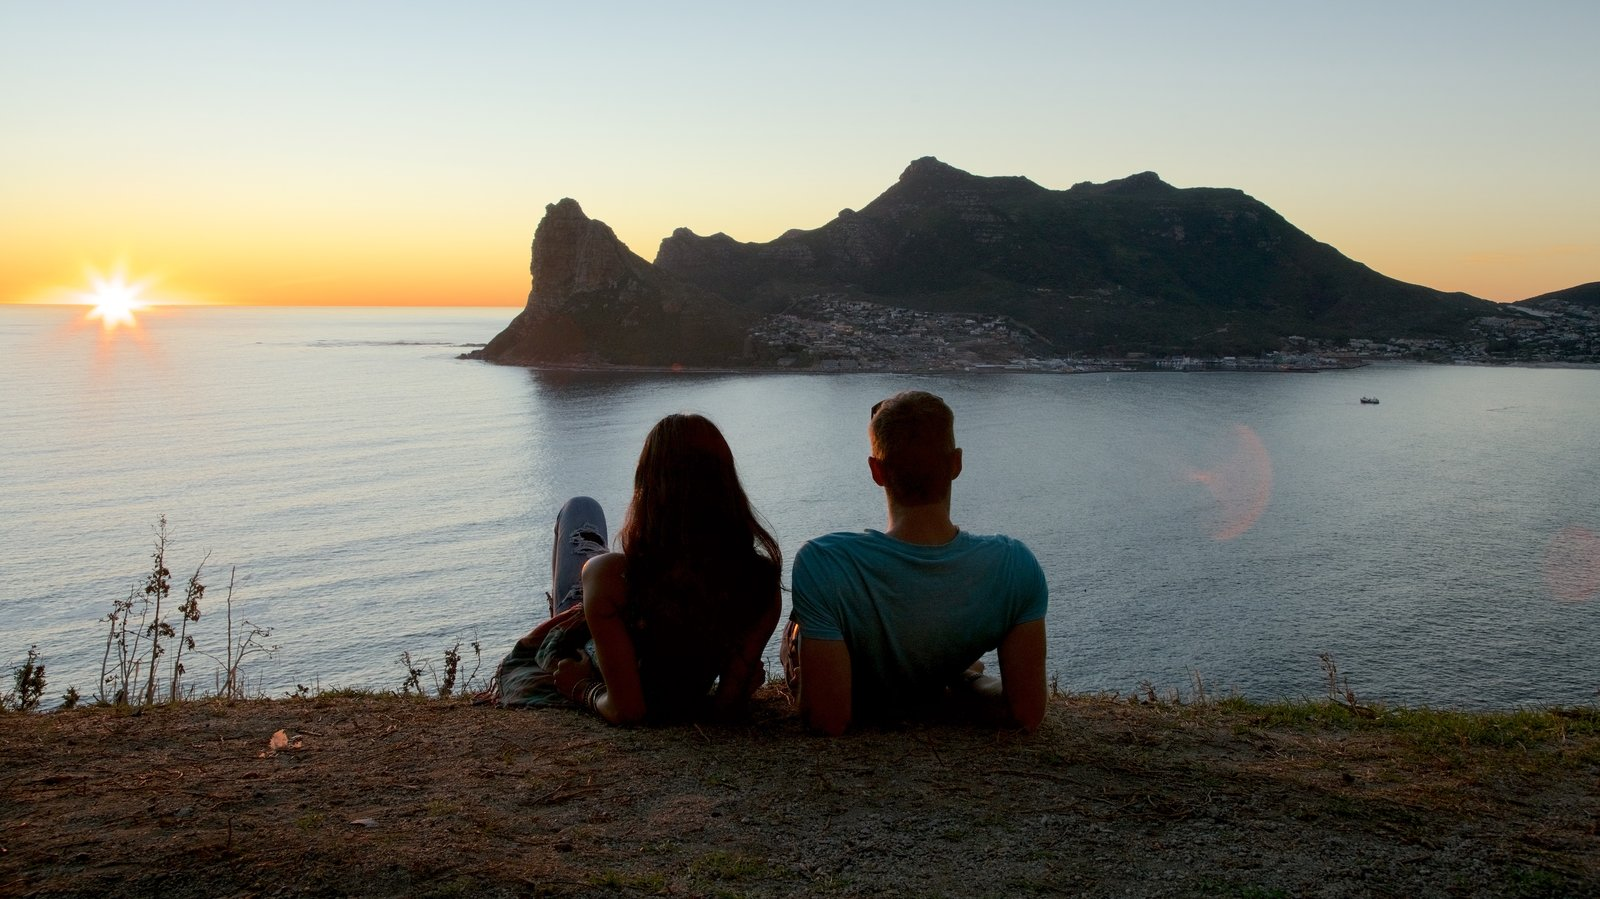 Chapmans Peak featuring a sunset and rugged coastline as well as a couple